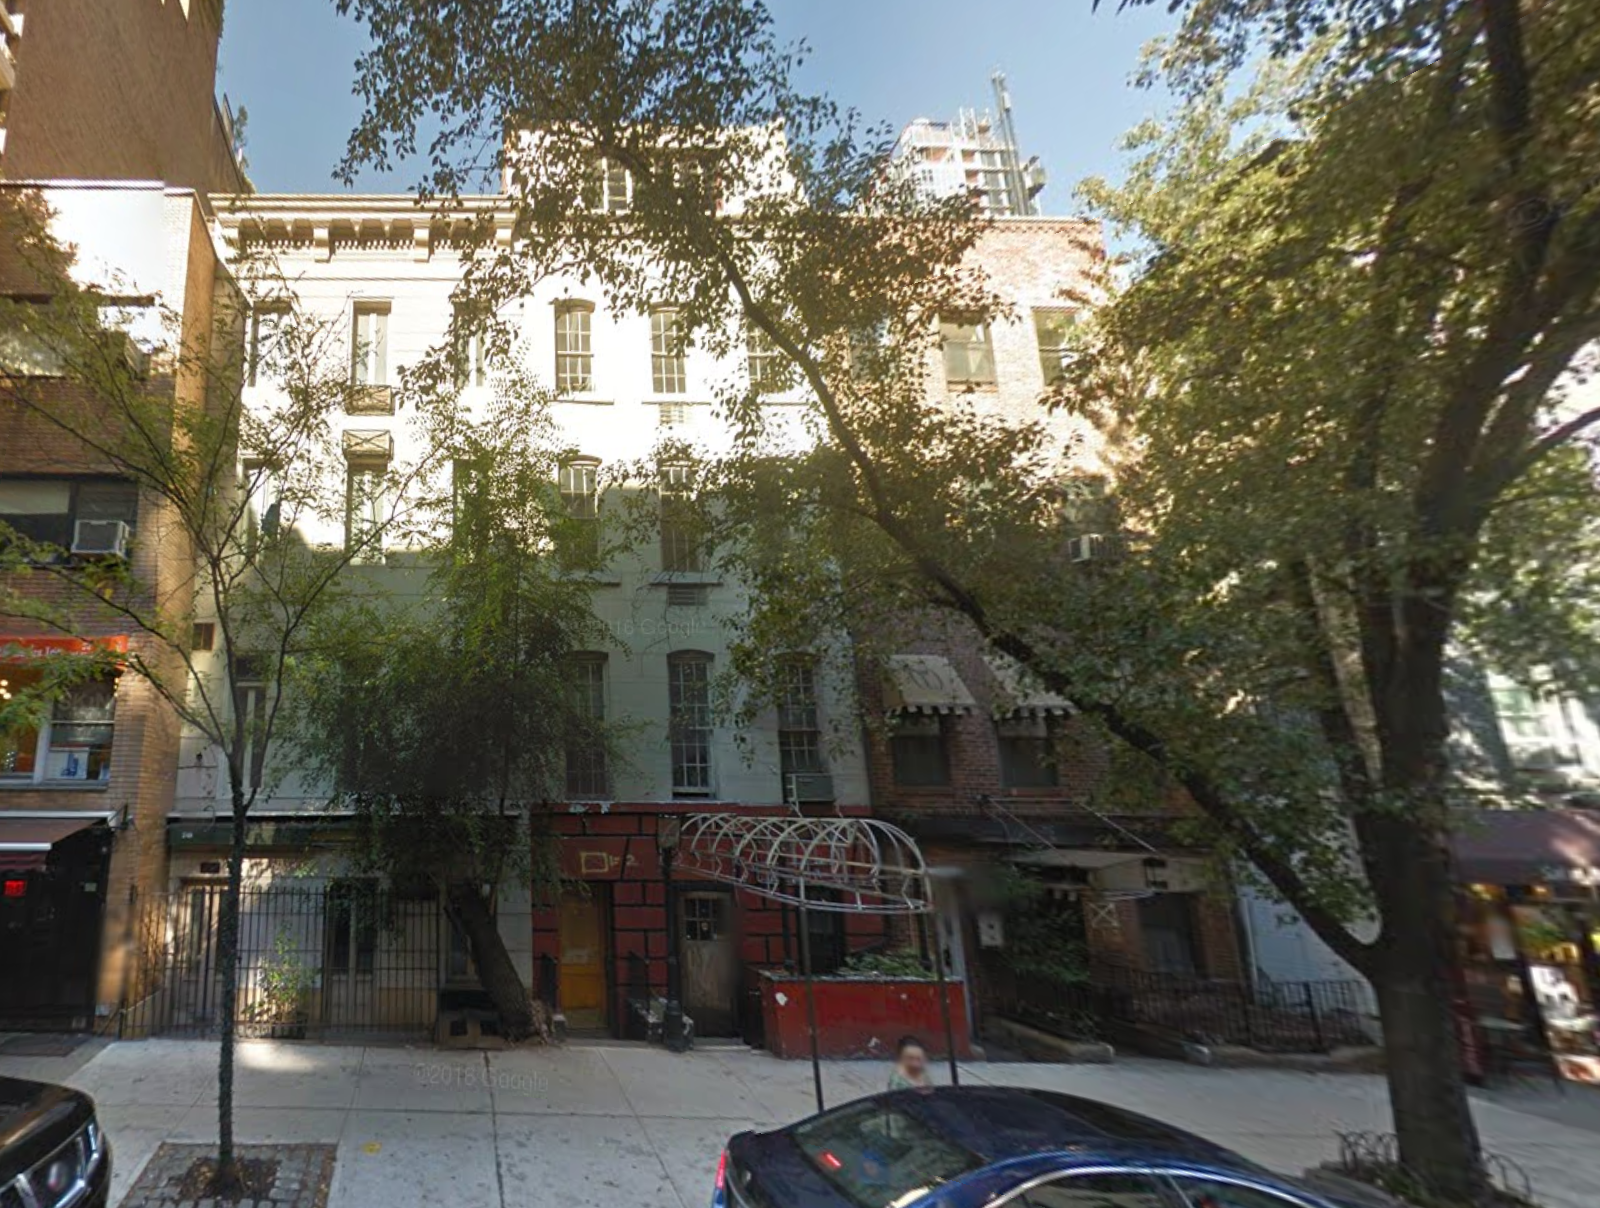 249 East 50th Street, image via Google Maps